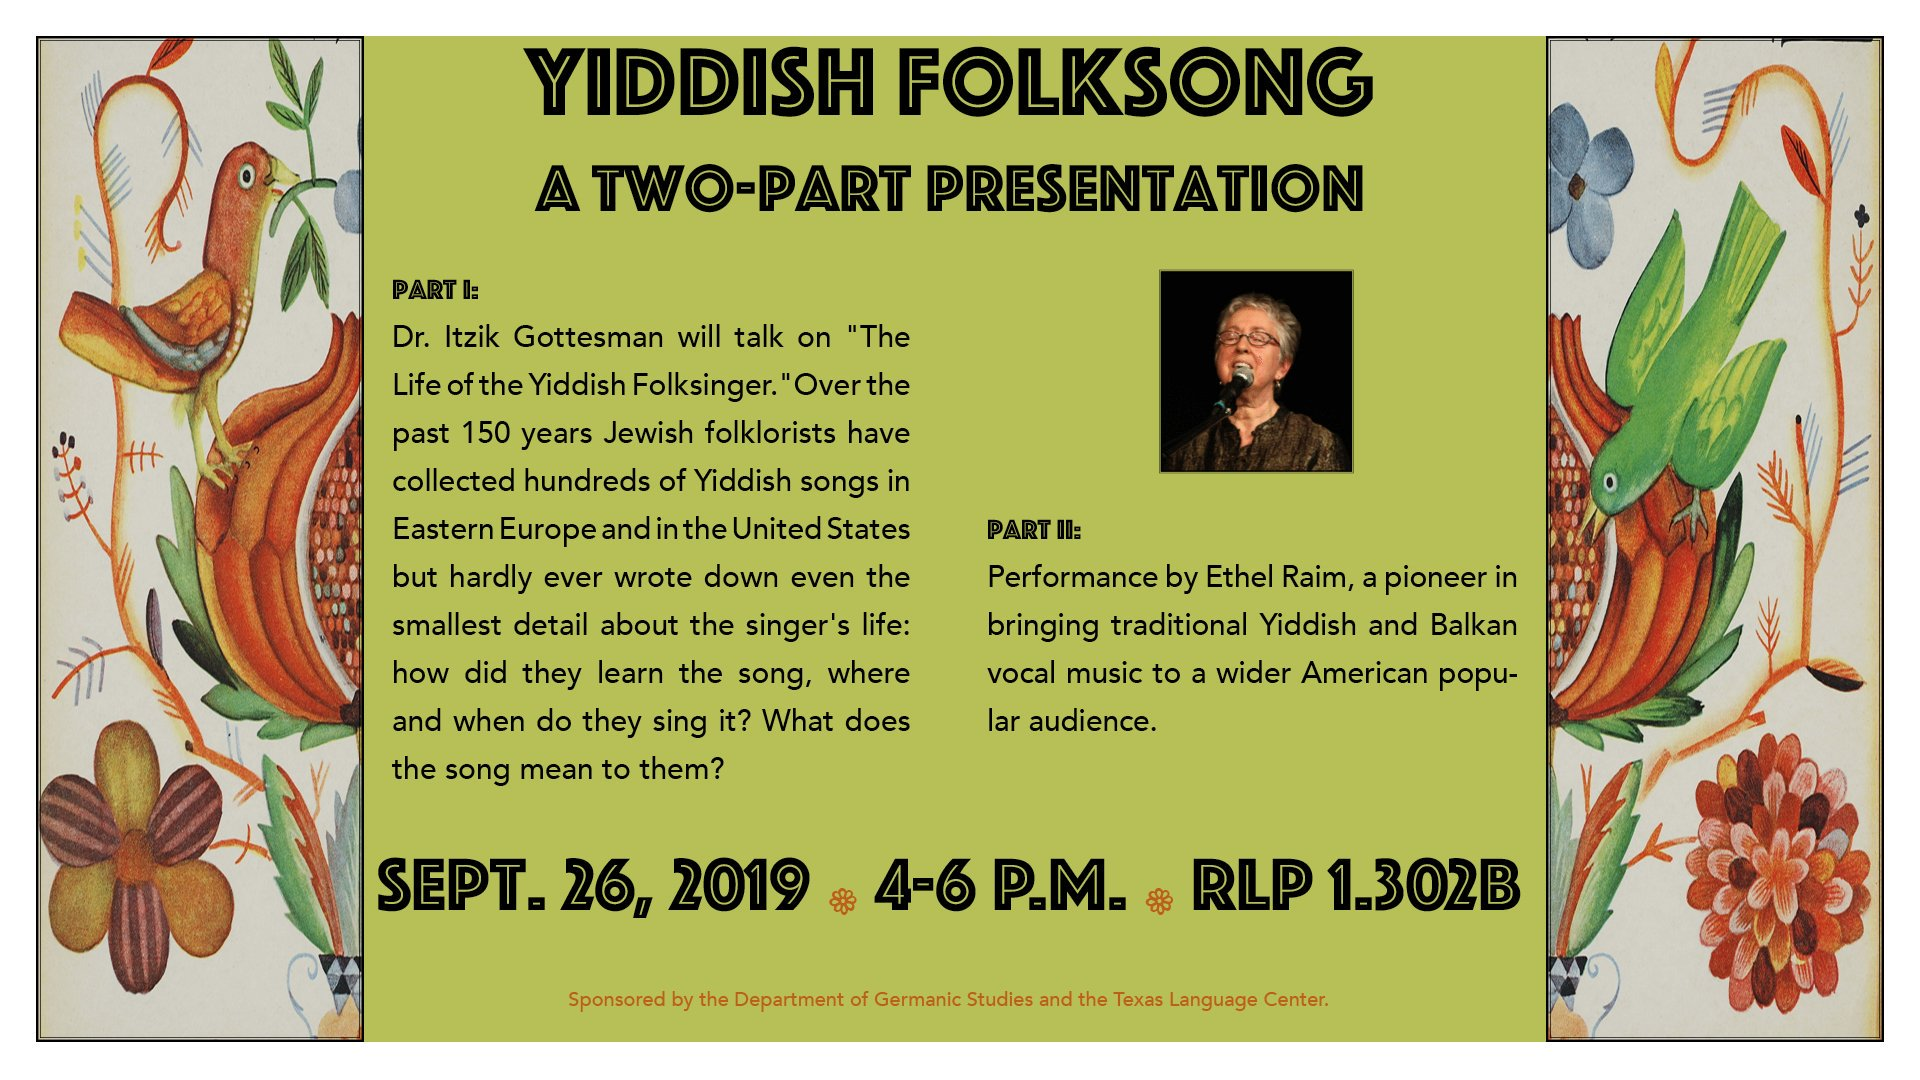 Yiddish Folksong: A Two-Part Presentation